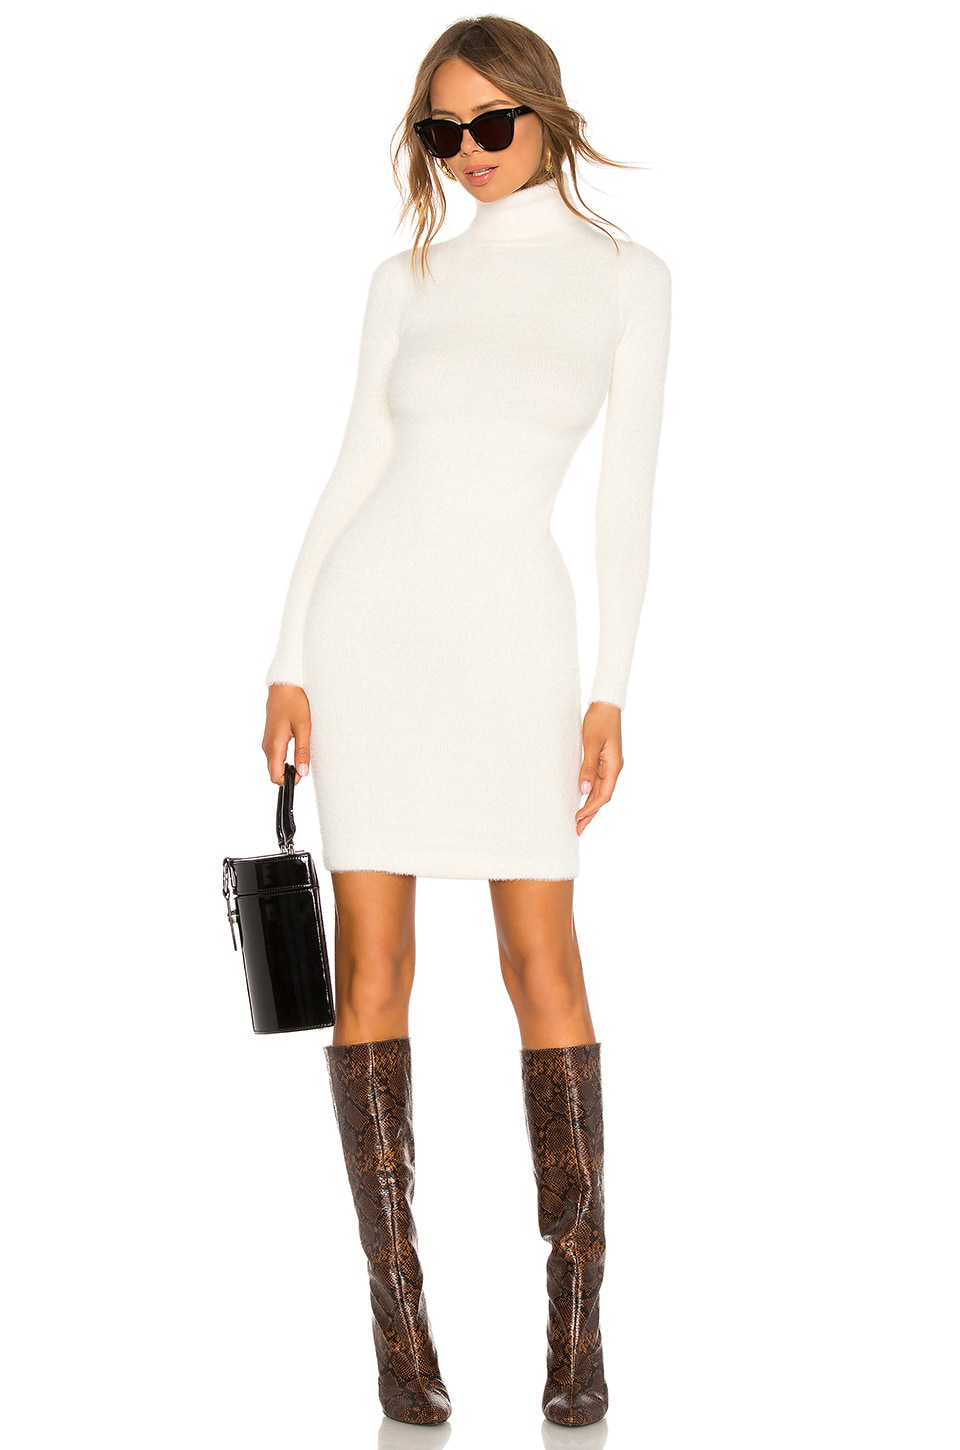 Surrey Sweater Dress                   LPA                                                                                                                             CA$ 232.78 25